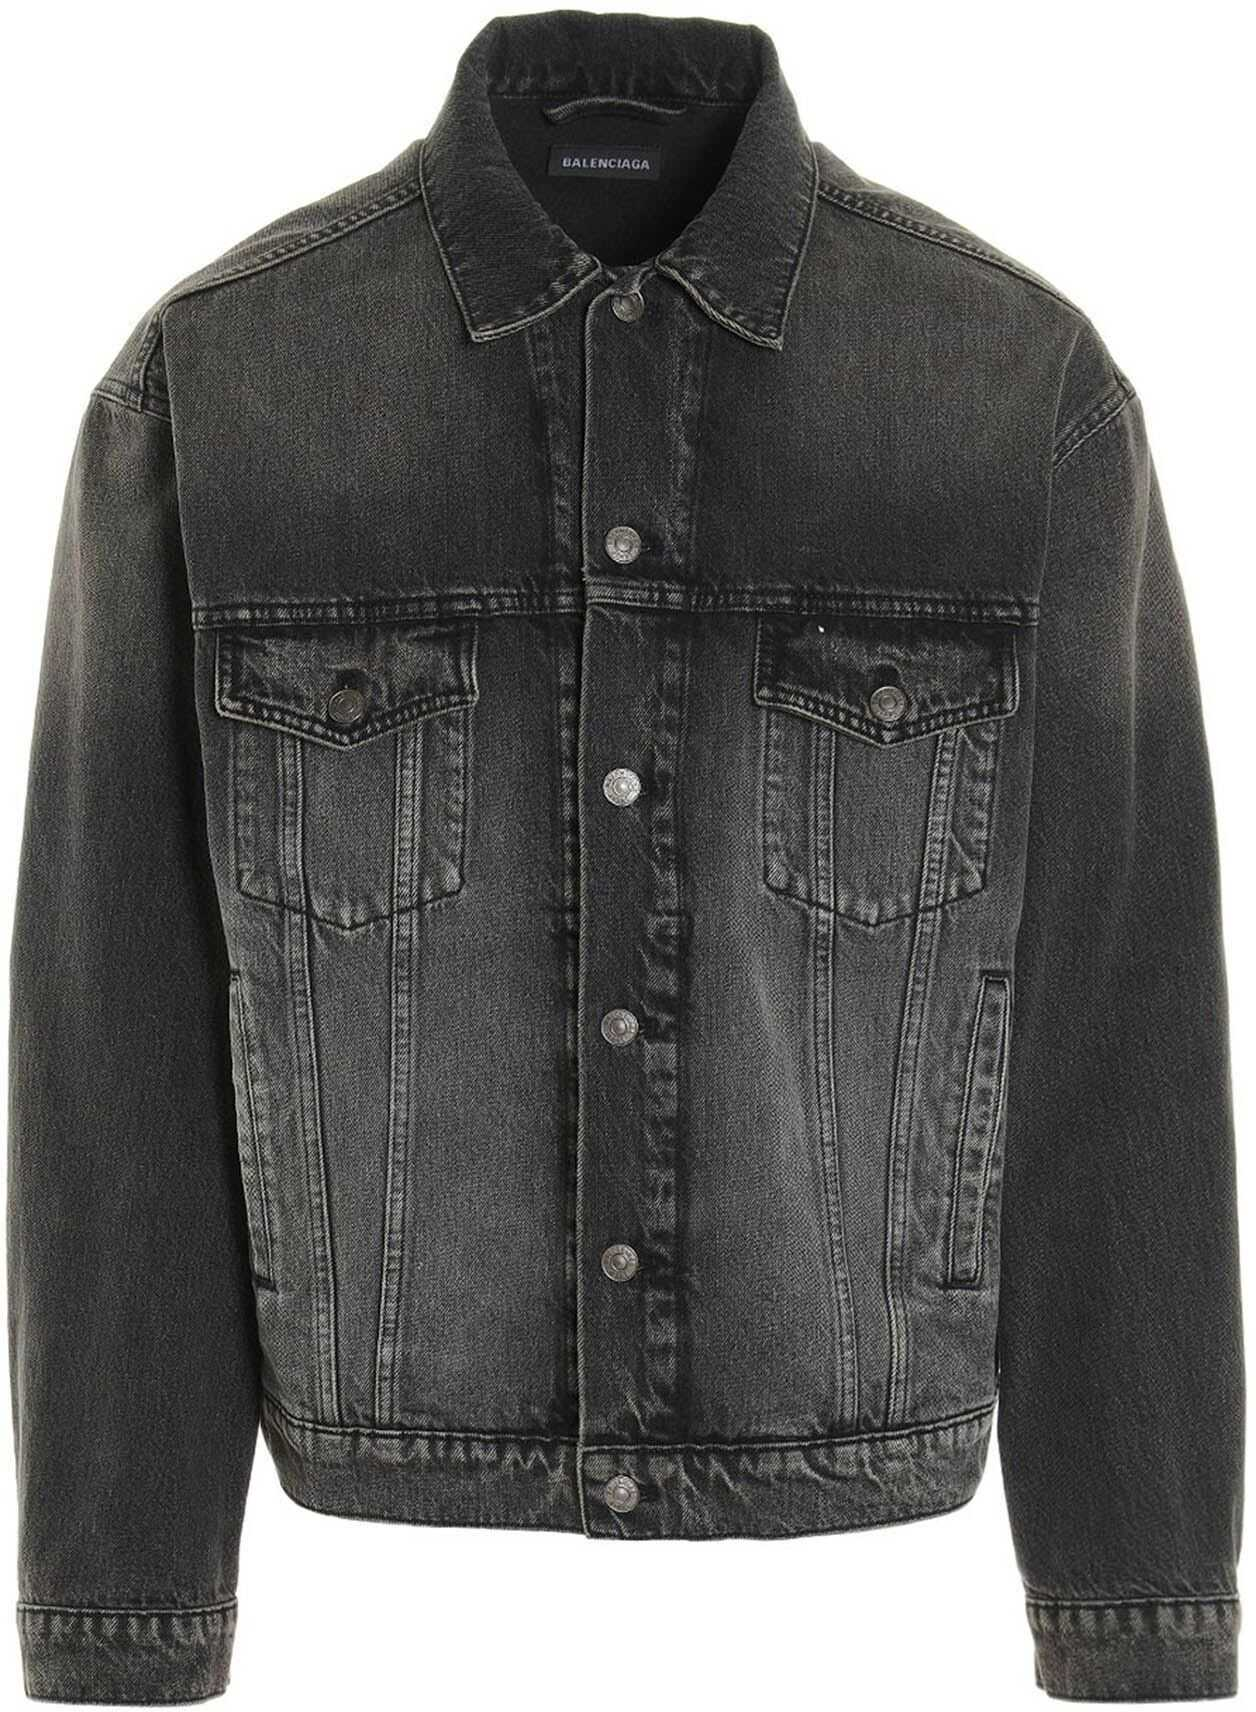 Balenciaga Notre Dame Printed Denim Jacket In Black Grey imagine